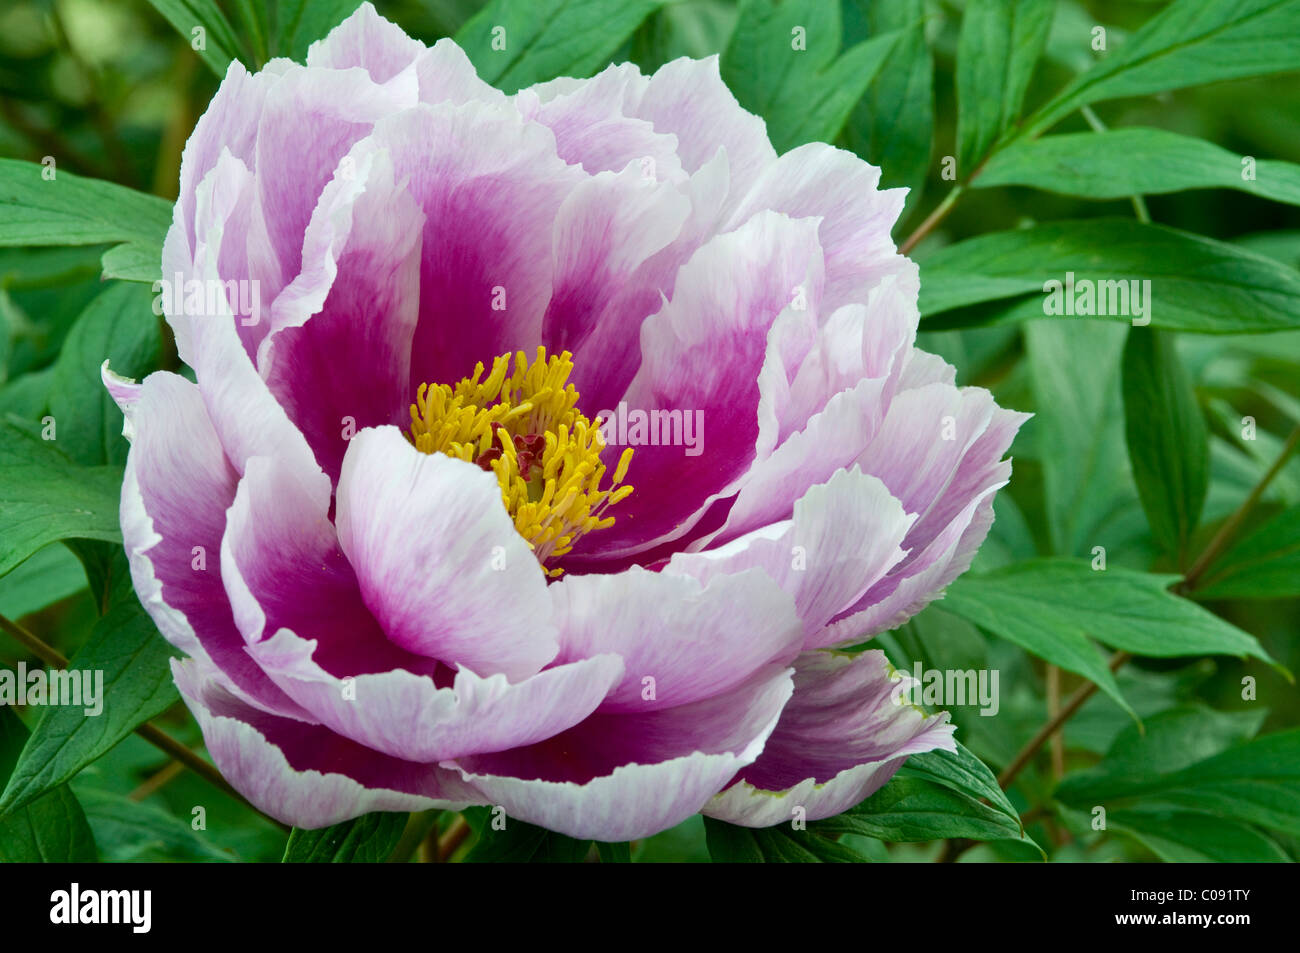 baum pfingstrose paeonia suffruticosa stockfoto bild 34619787 alamy. Black Bedroom Furniture Sets. Home Design Ideas